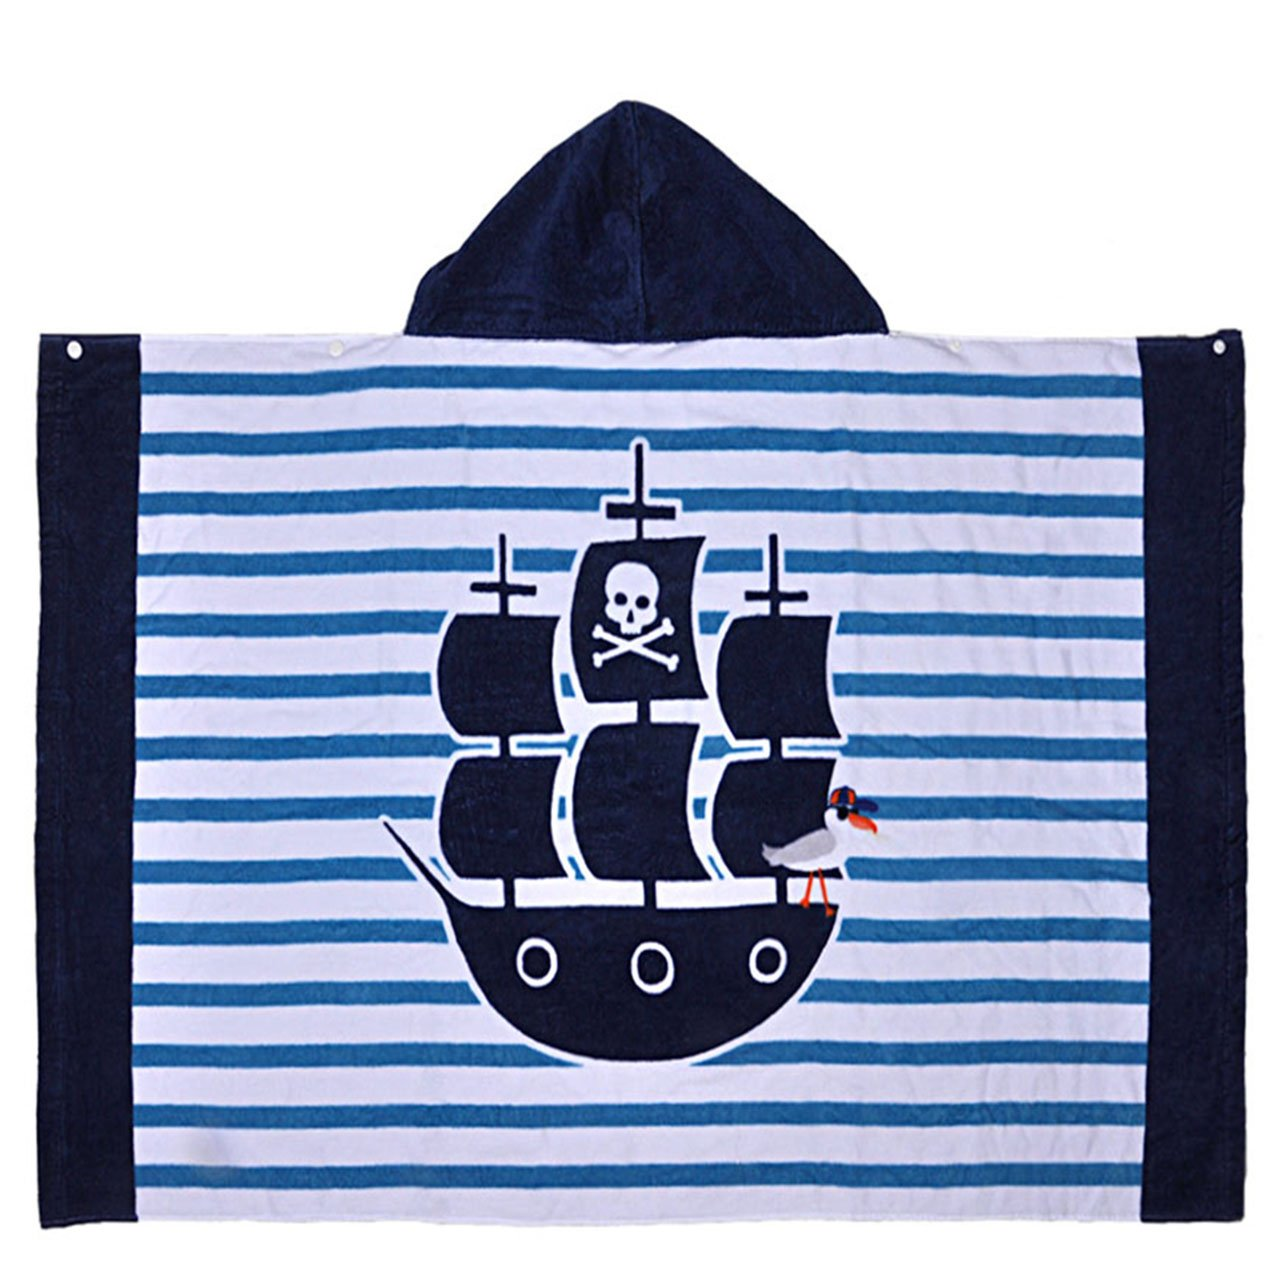 Pirate Ship Kid Bath Poncho Towel for 1-6 Years Boys Adorable Print Highly Absorbent and Ultra Soft 30.3X 48.8 Inches Cotton Pullover Towel with Snap for Bath//Pool//Beach//Summer